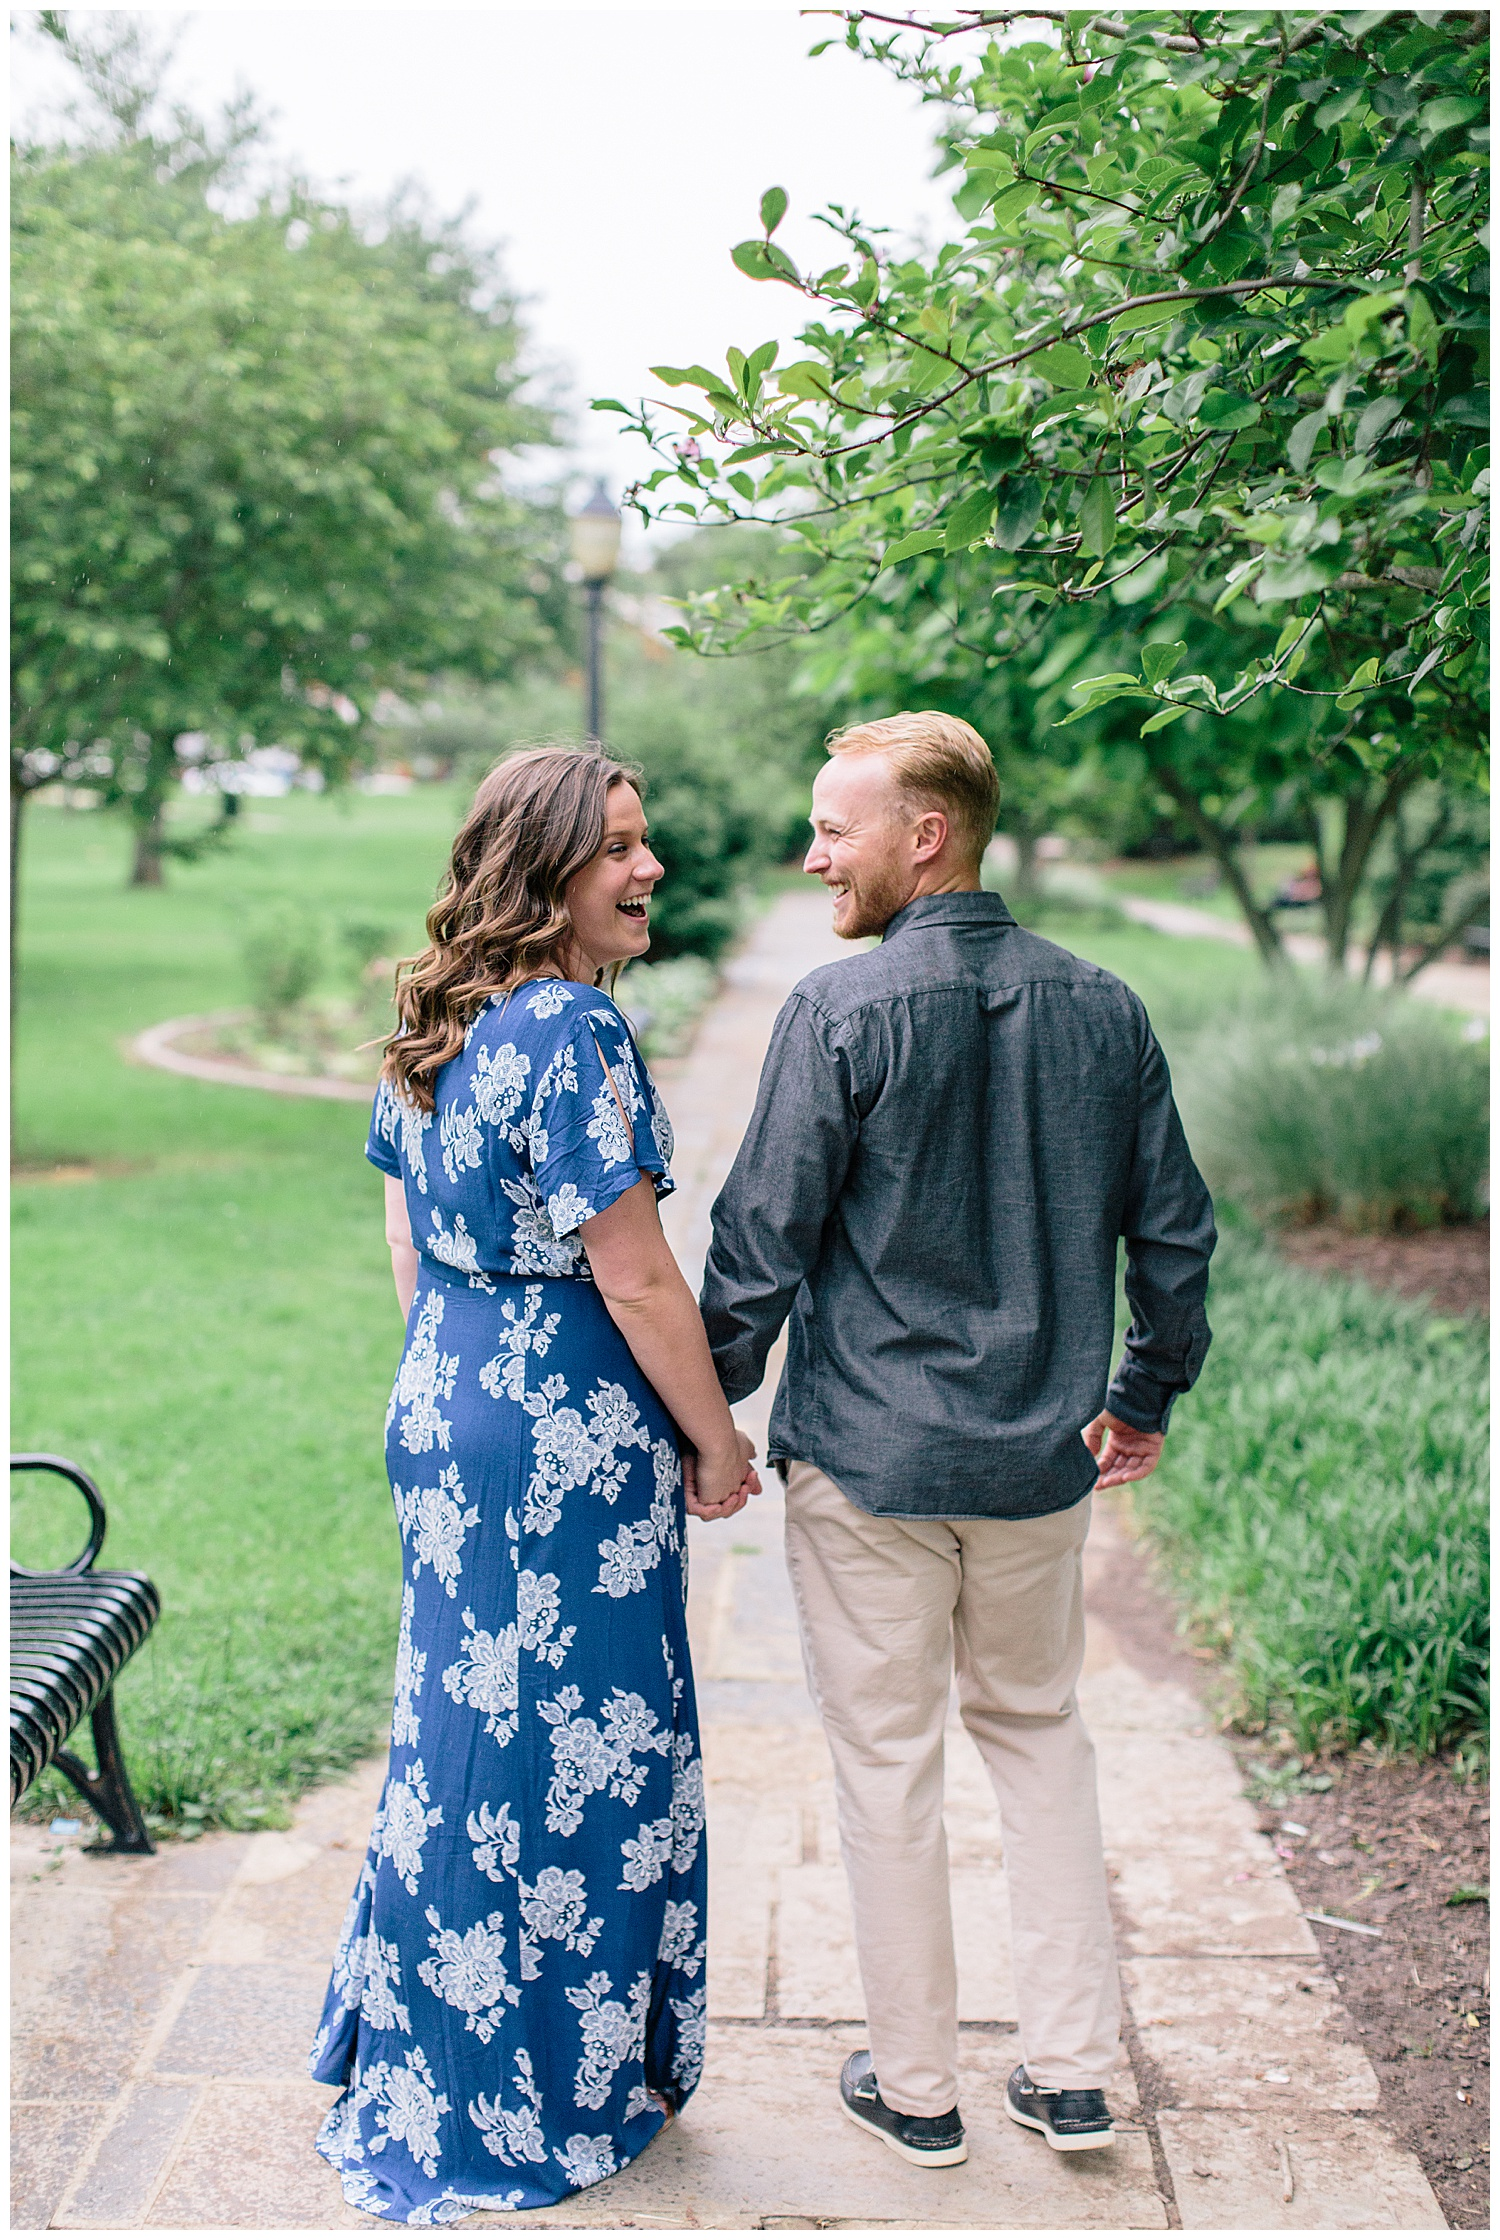 emily-belson-photography-frederick-md-engagement-10.jpg